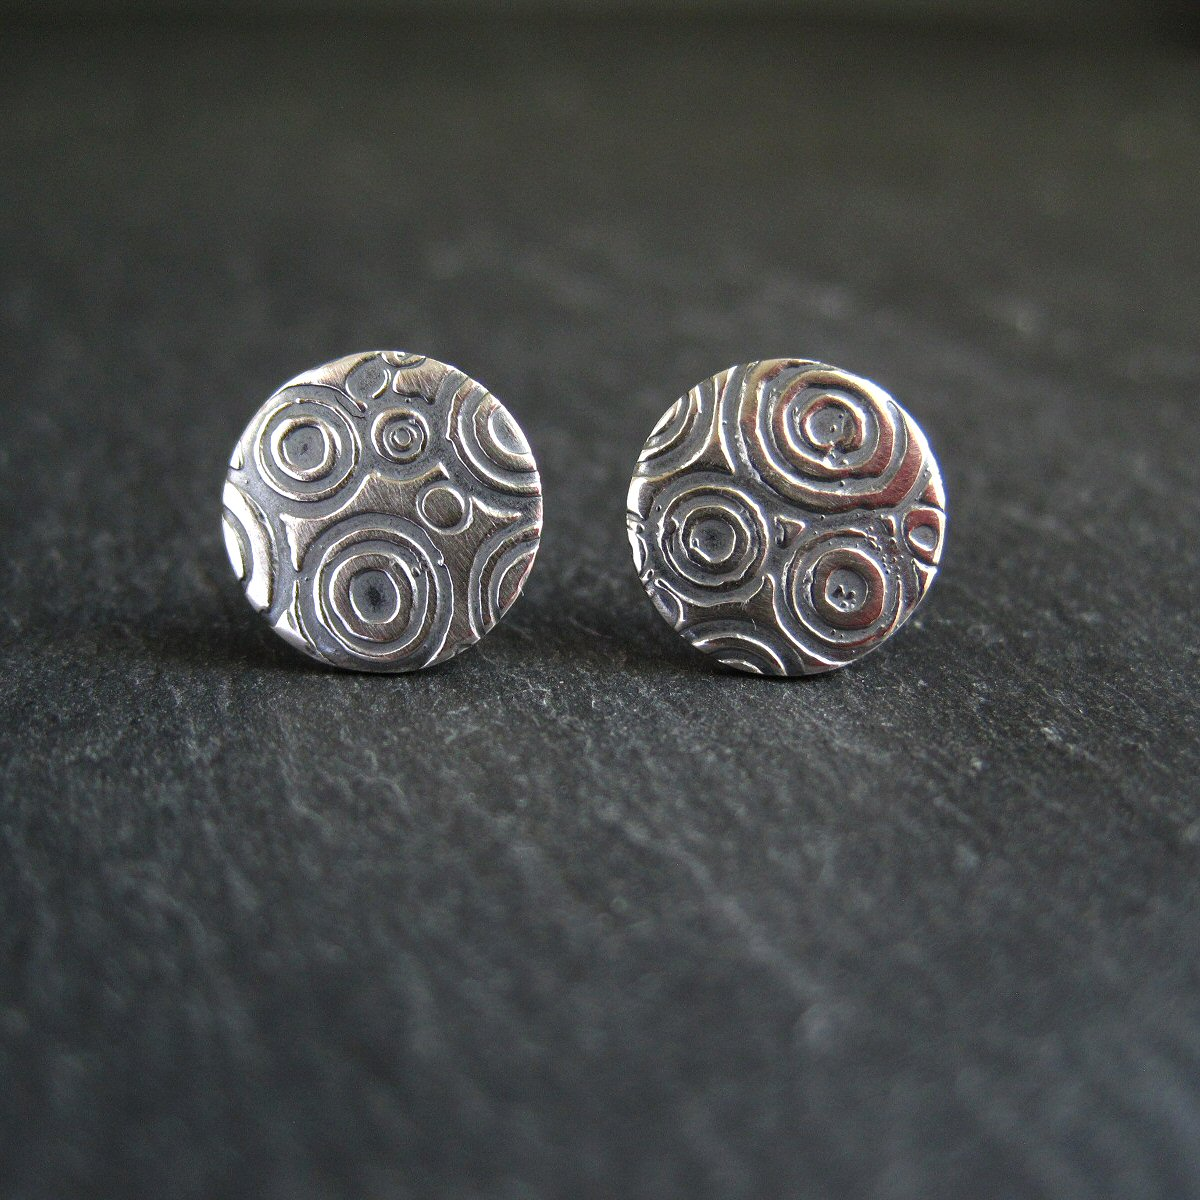 sterling silver embossed stud earrings © Cinnamon Jewellery 2015